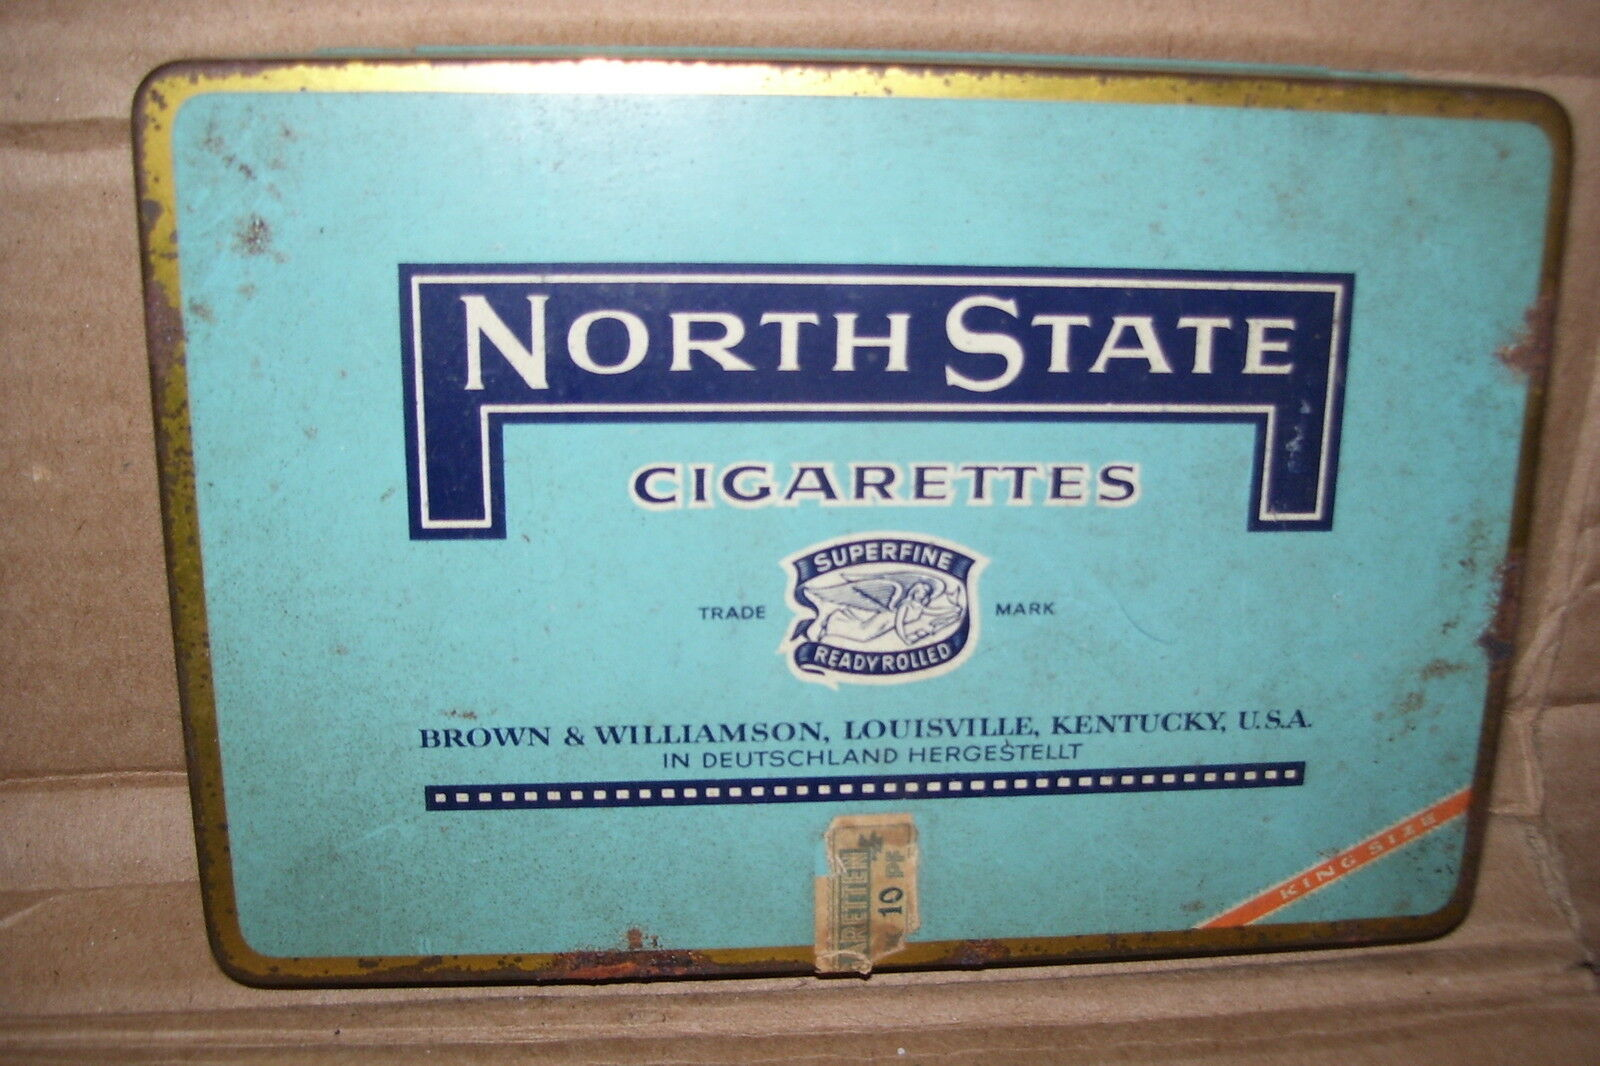 Vintage North State Superfine Ready Rolled Cigarettes Tin Box Container Tobacco • $29.99 - PicClick